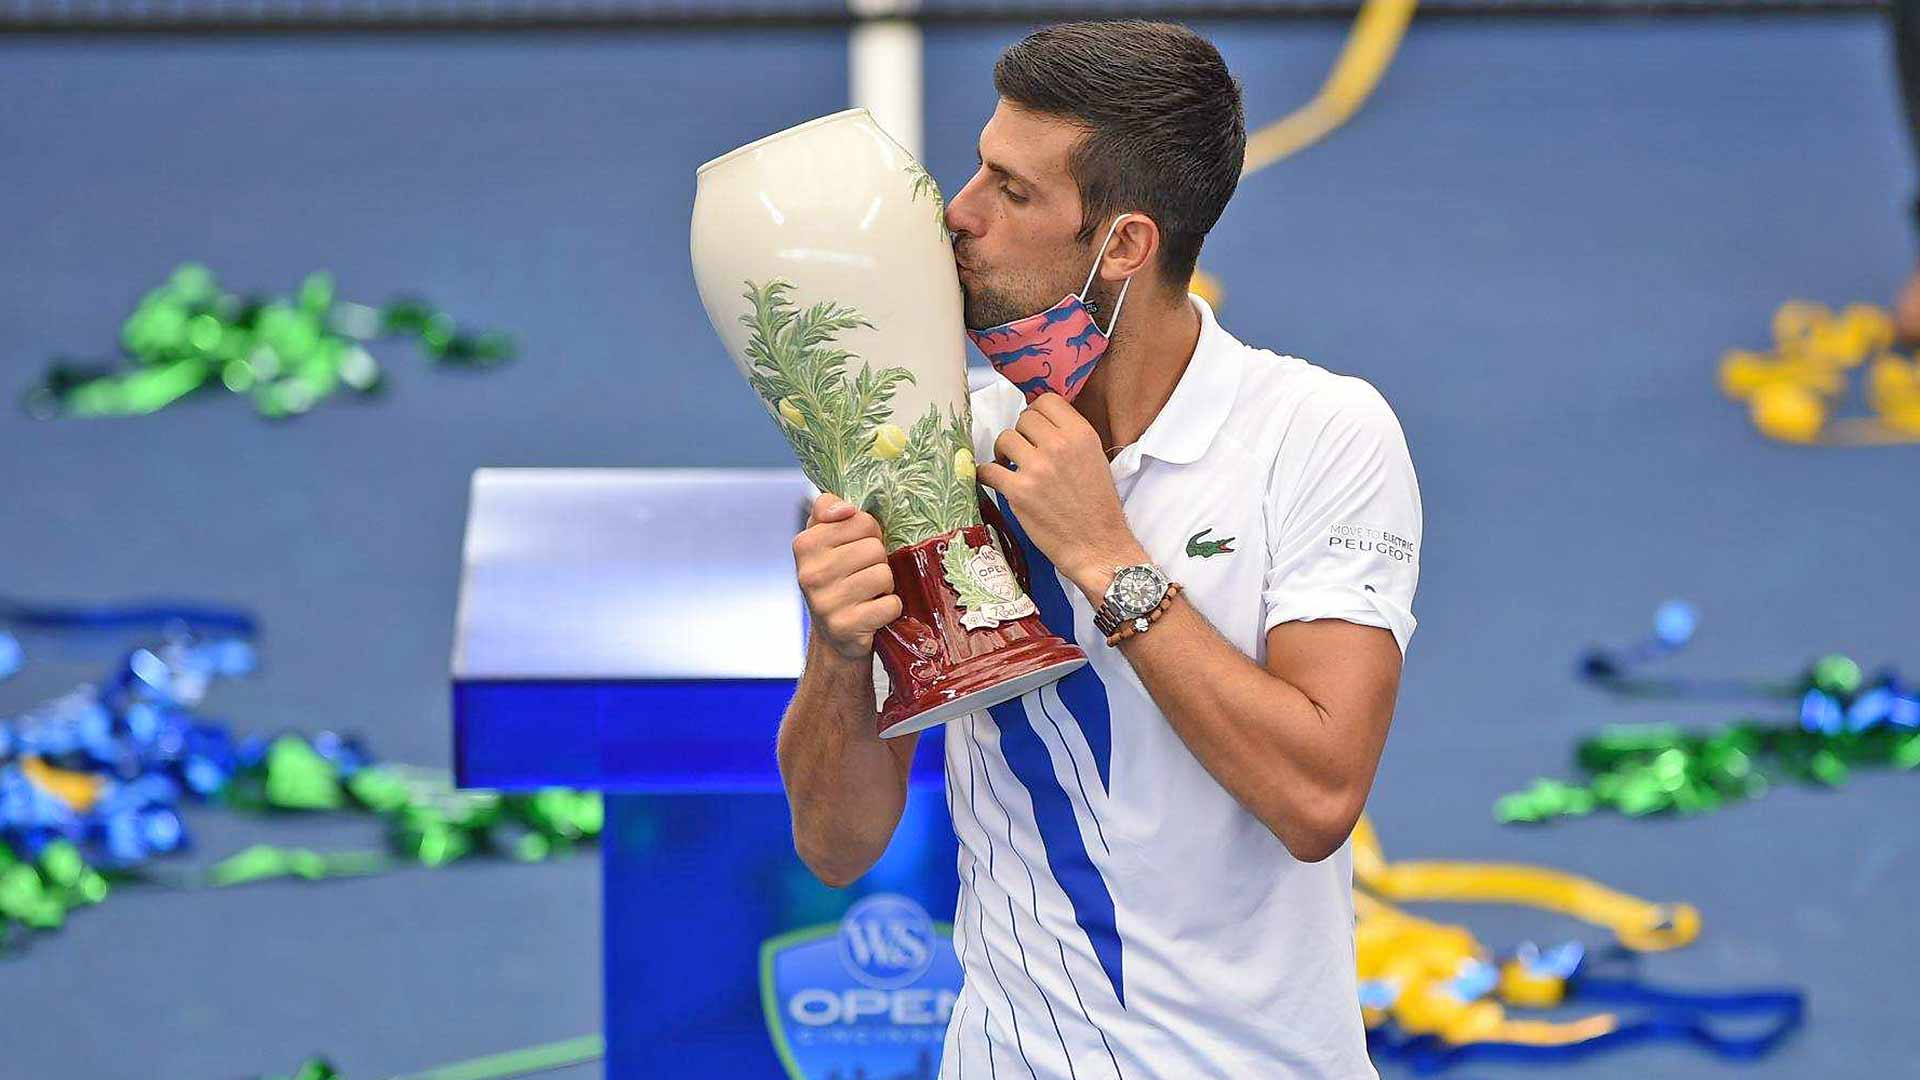 Novak Djokovic S Golden Rule A Grandmaster Twice Over Atp Tour Tennis